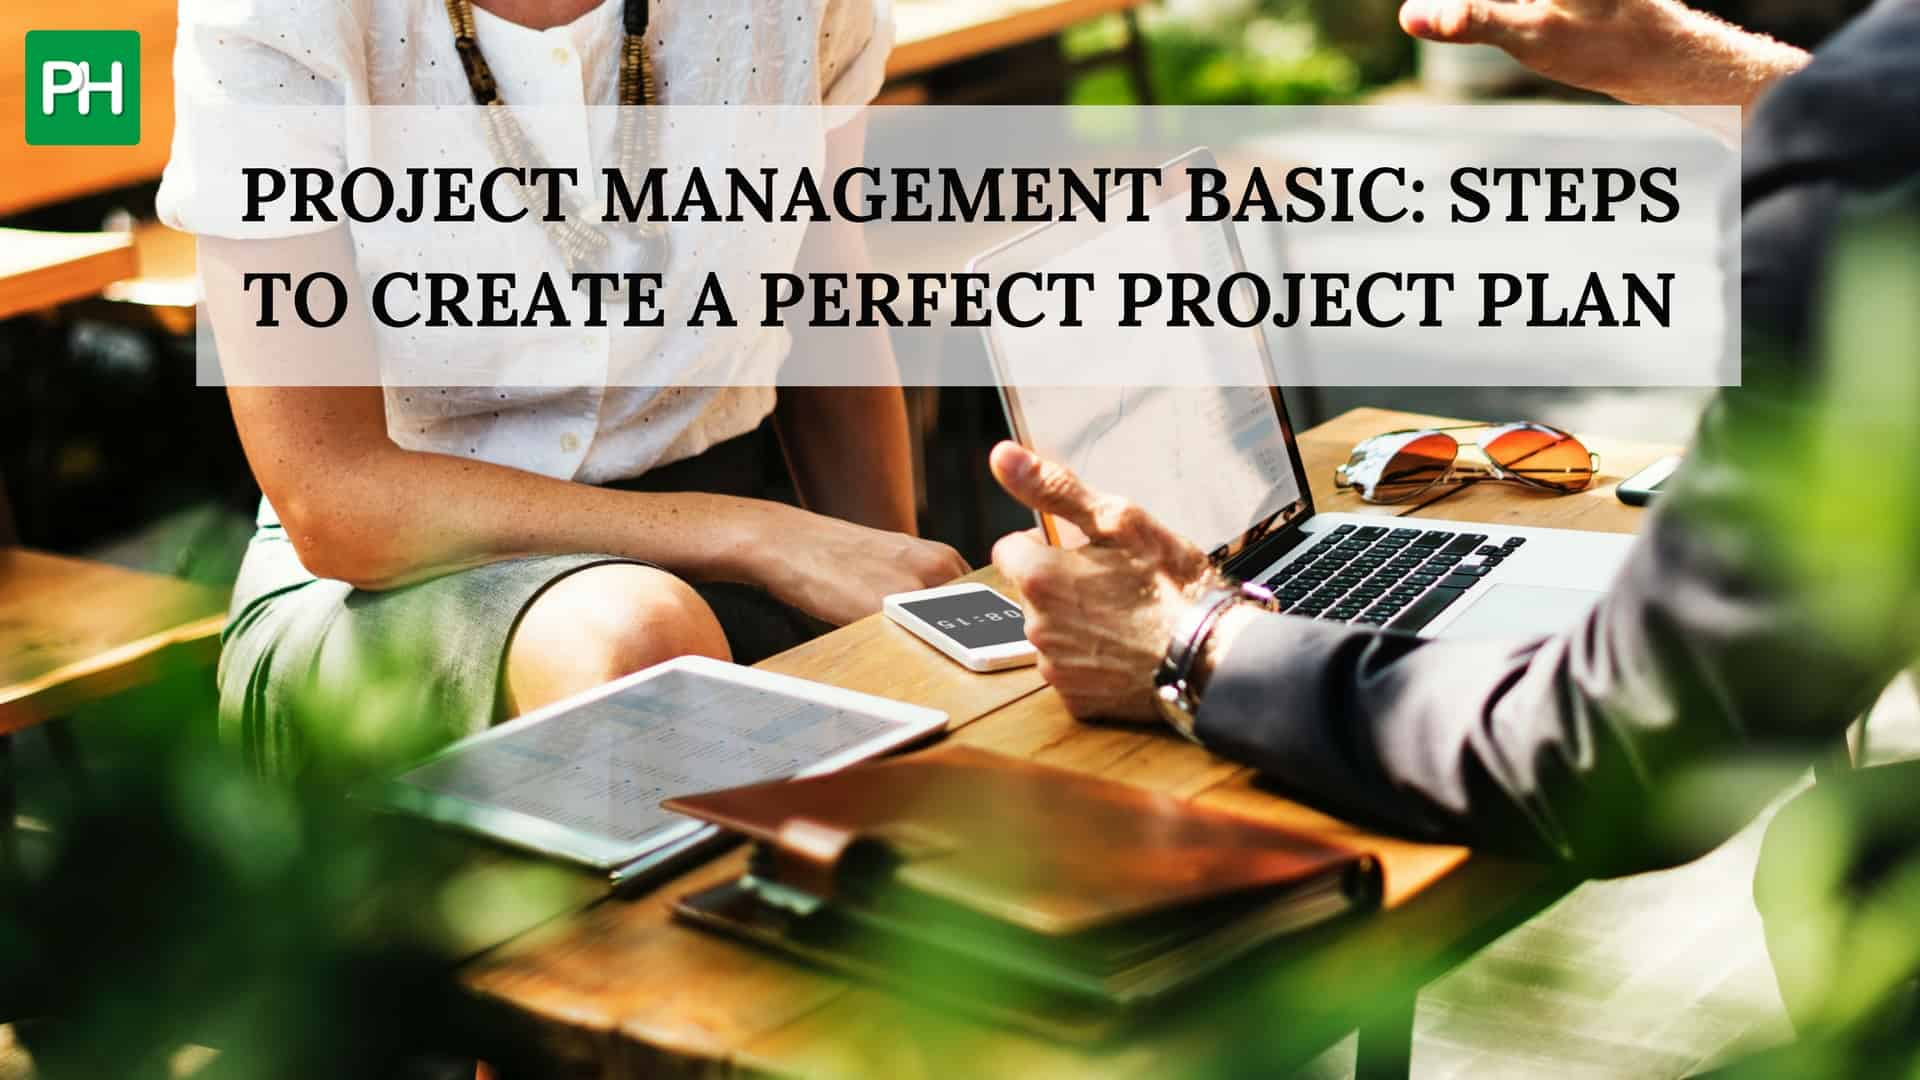 Project management basic: Steps to create a perfect project plan